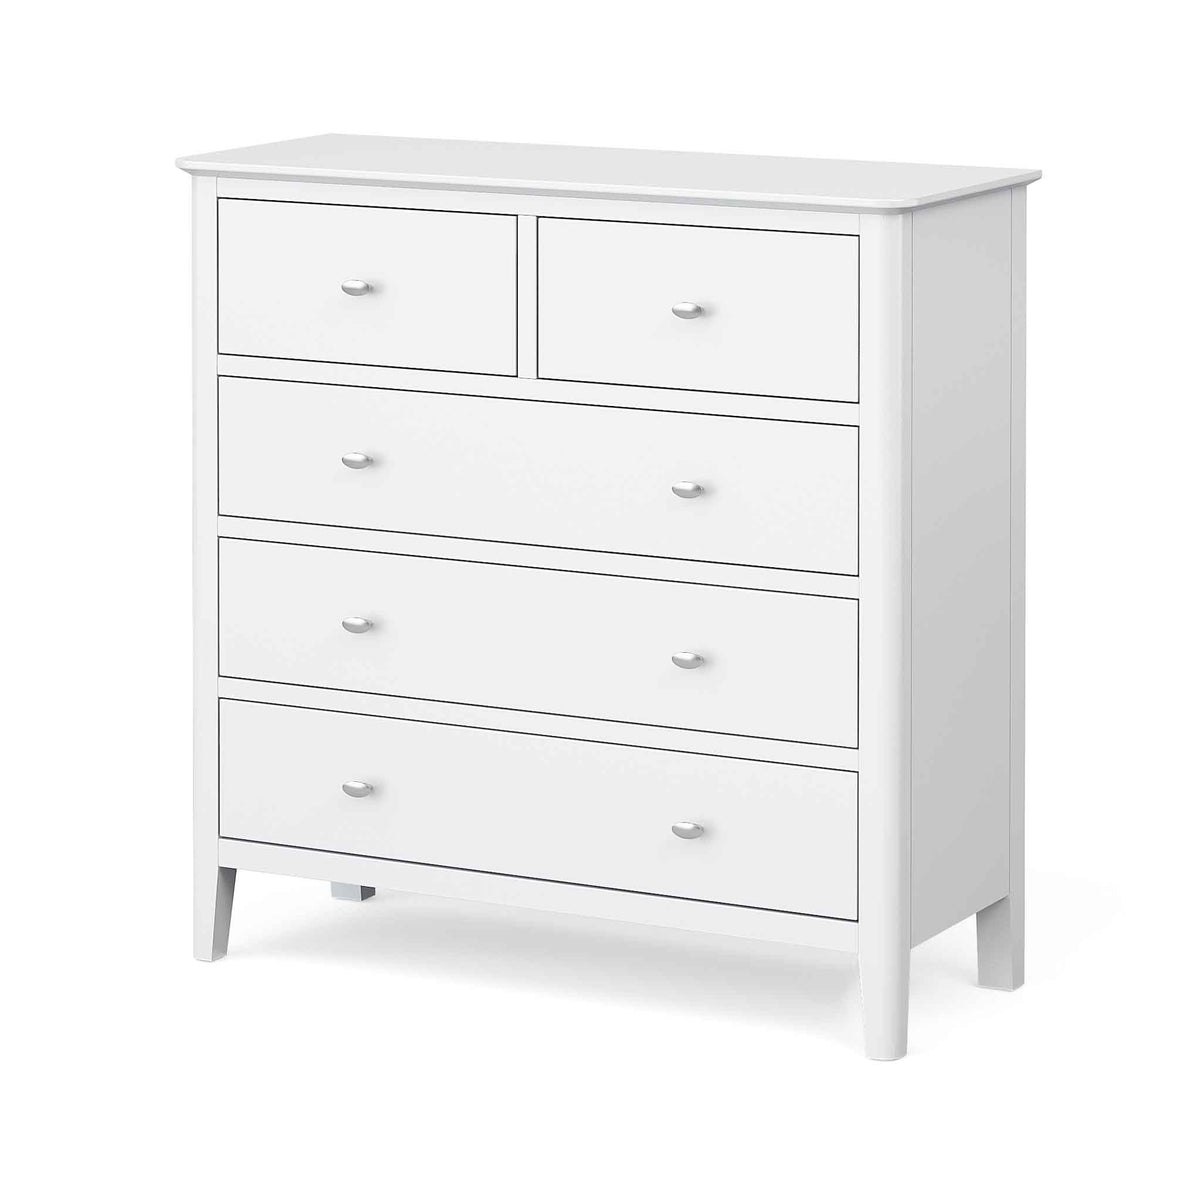 Chester White 2 Over 3 Chest of Drawers - Side view